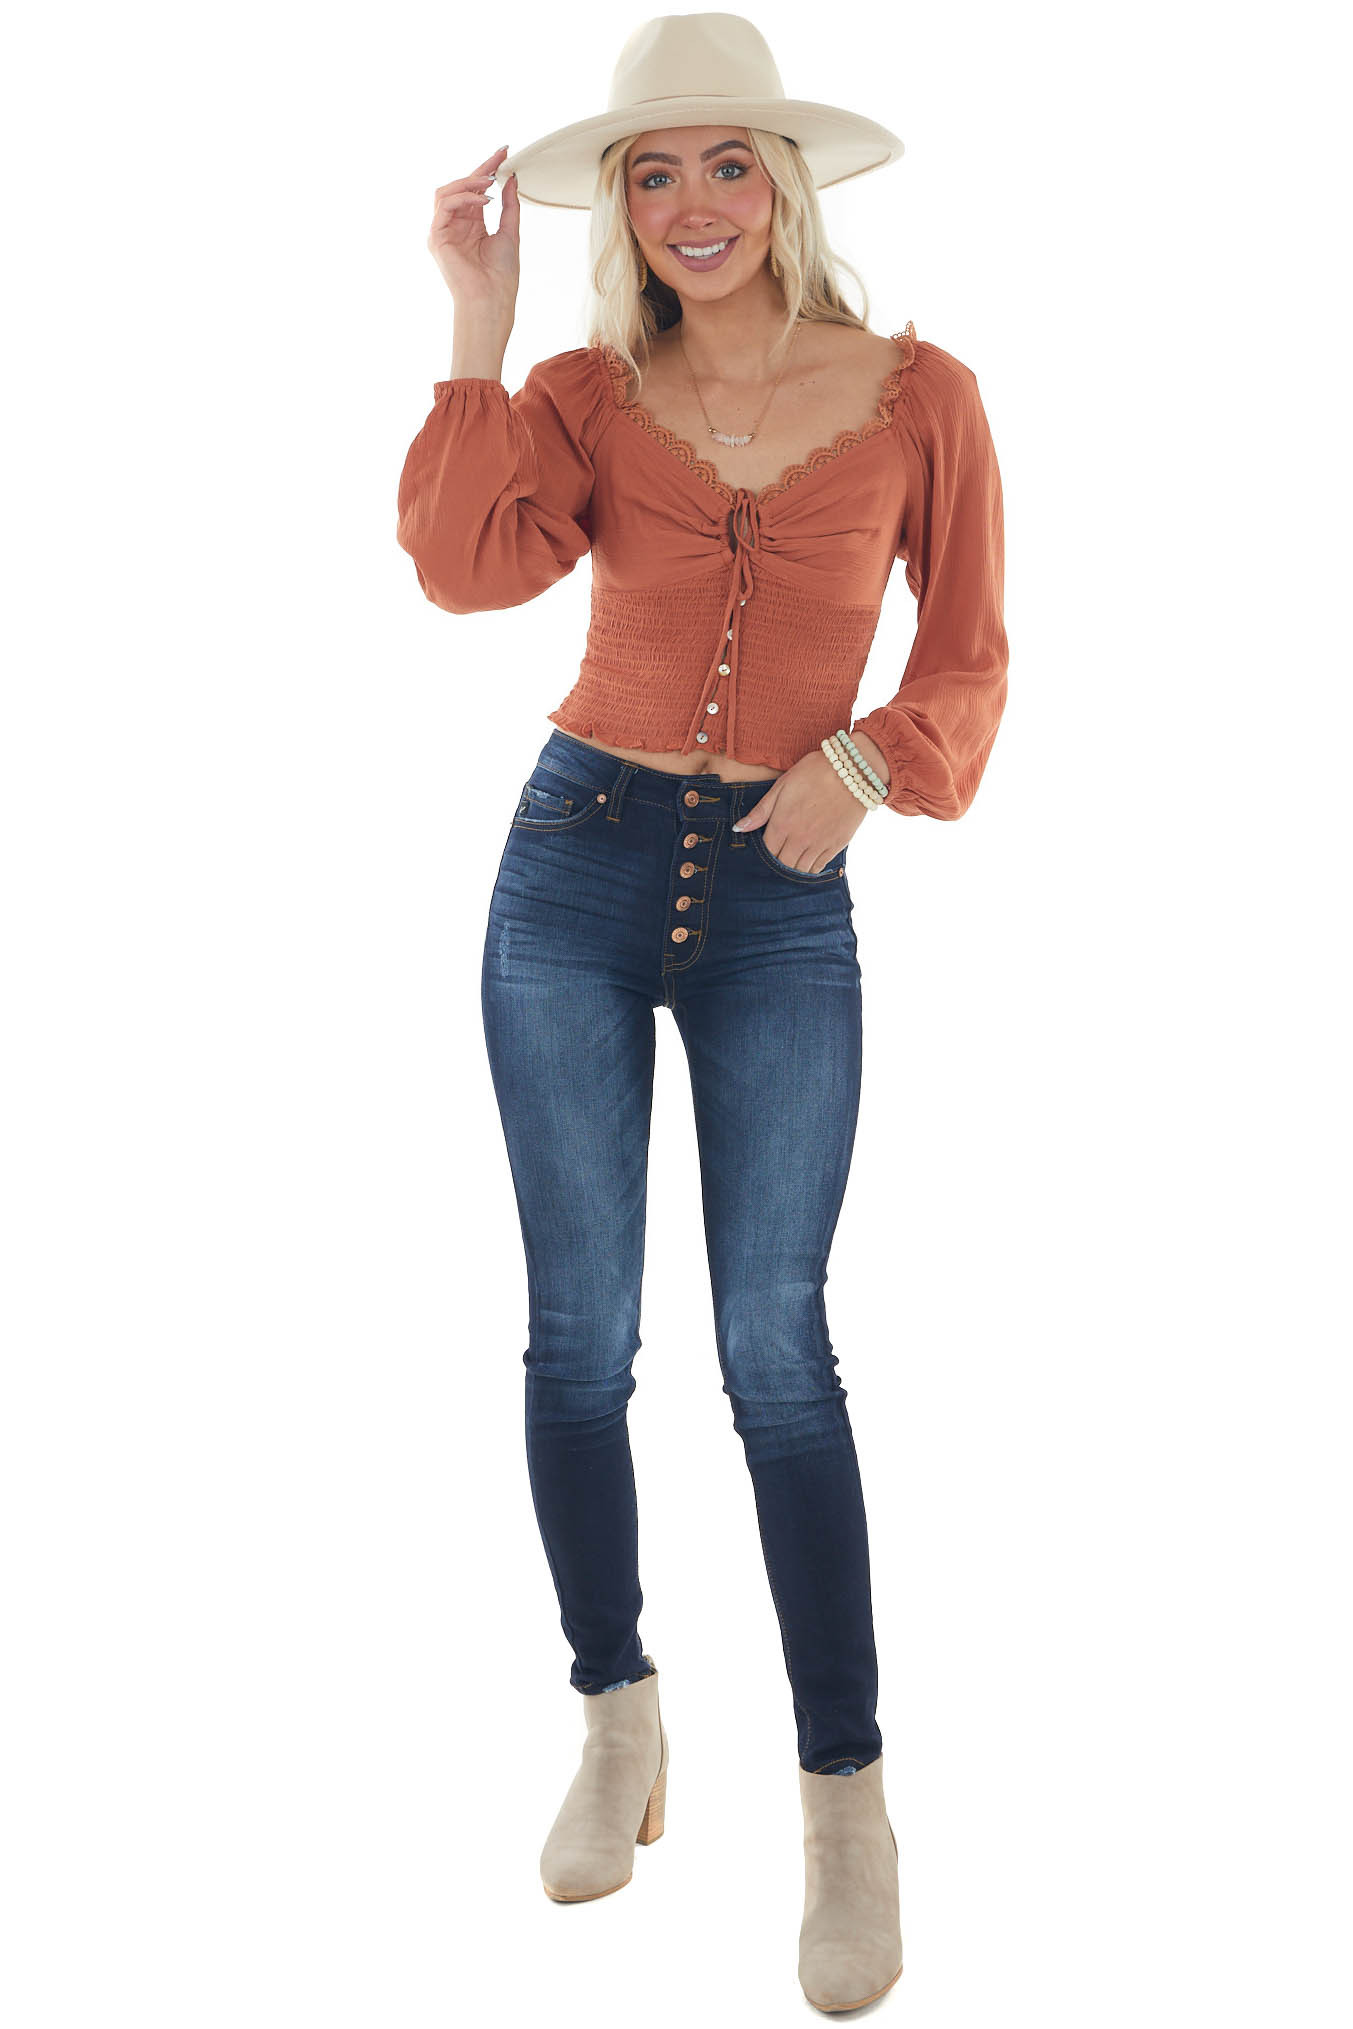 Tawny Long Sleeve Smocked Crop Top with Lace Detail